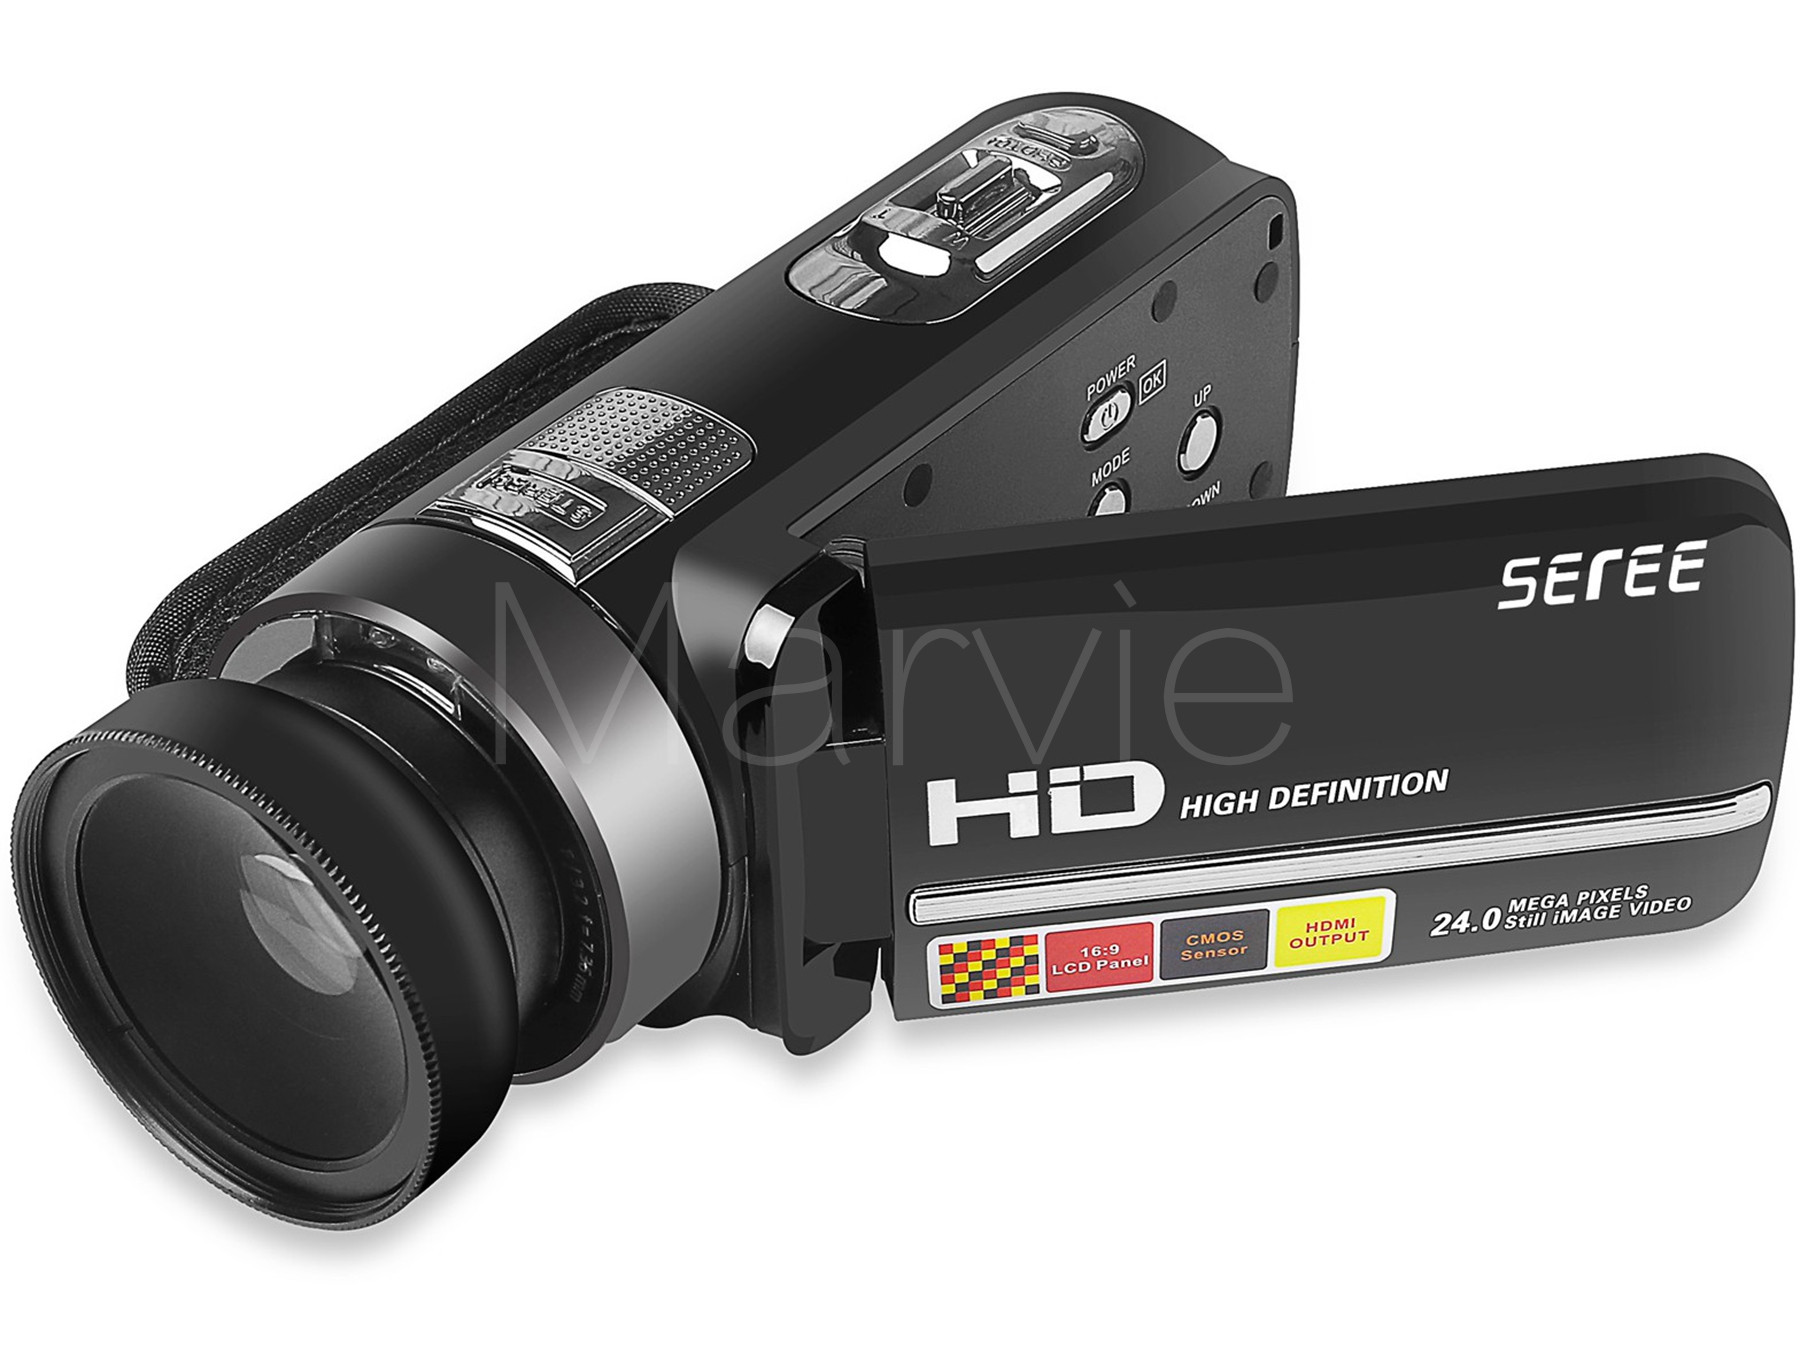 Seree 17 Latest HDV-301 Portable Camcorder Full HD 1080P 16x Digital Zoom Digital Video Camera Recorder DVR 4